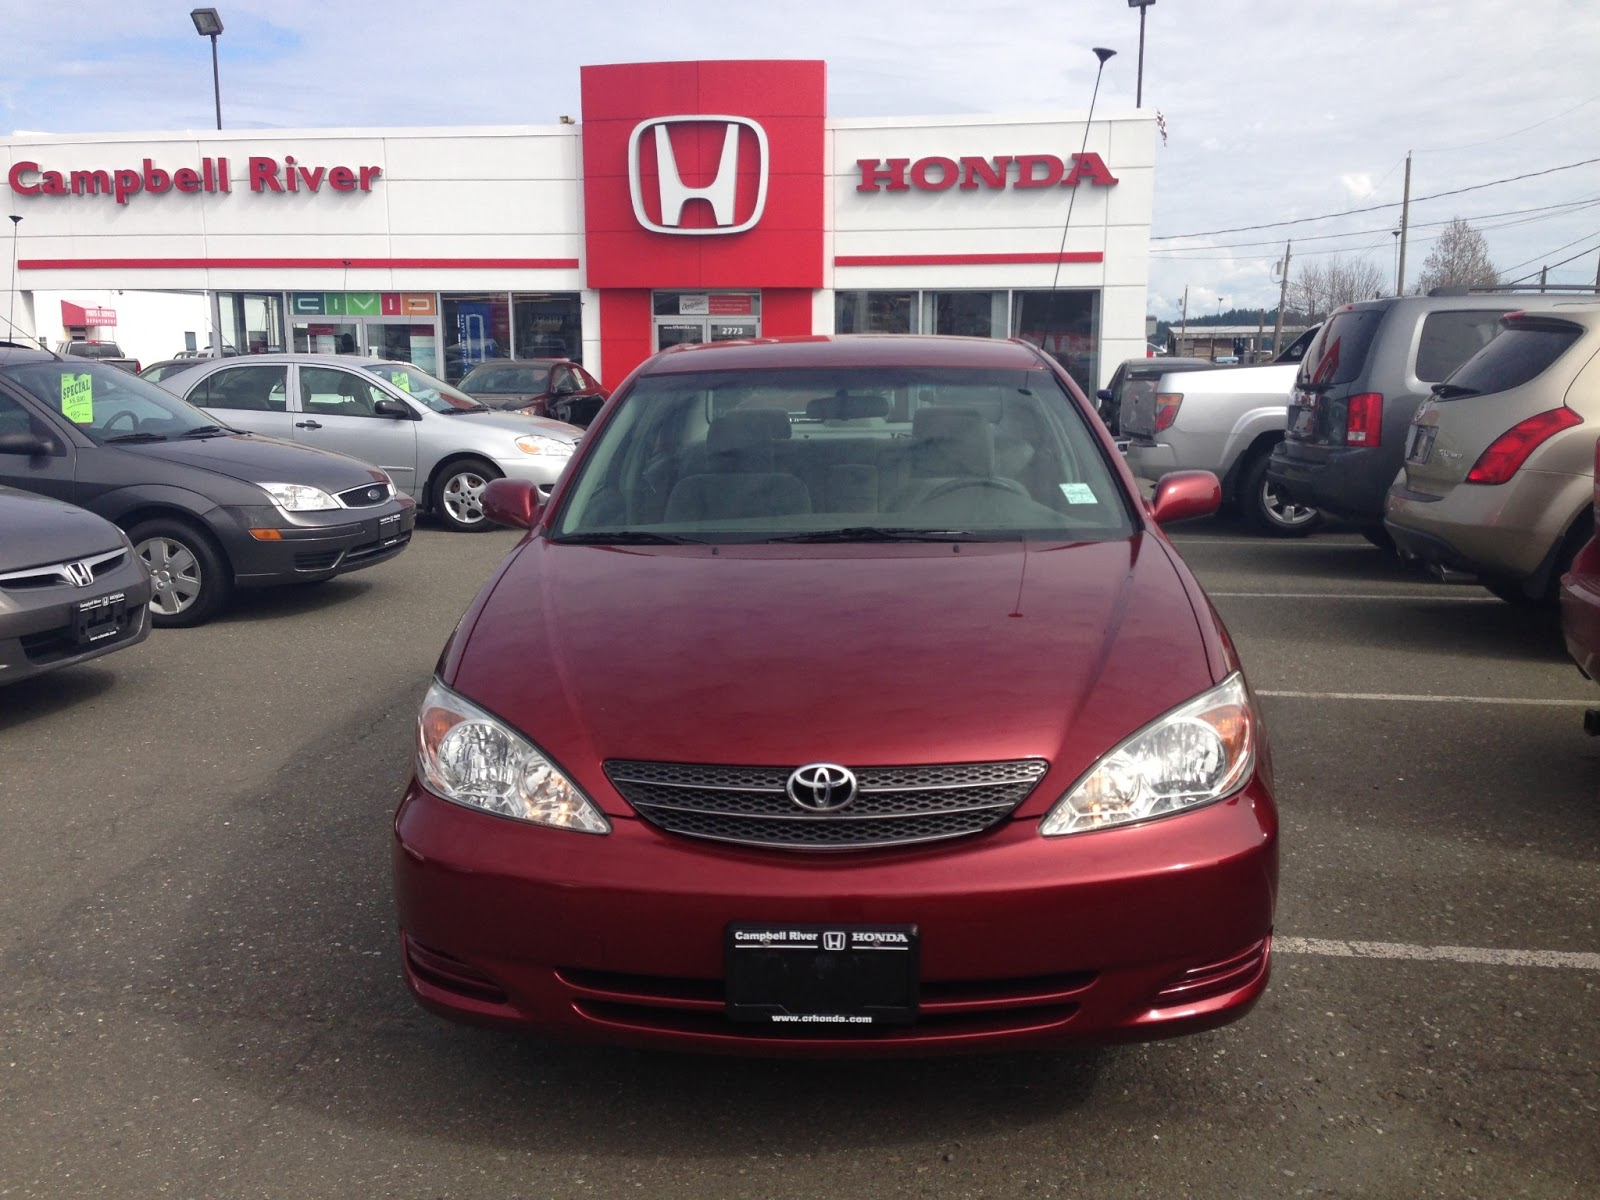 2002 toyota camry owners manual specs price release date and review. Black Bedroom Furniture Sets. Home Design Ideas